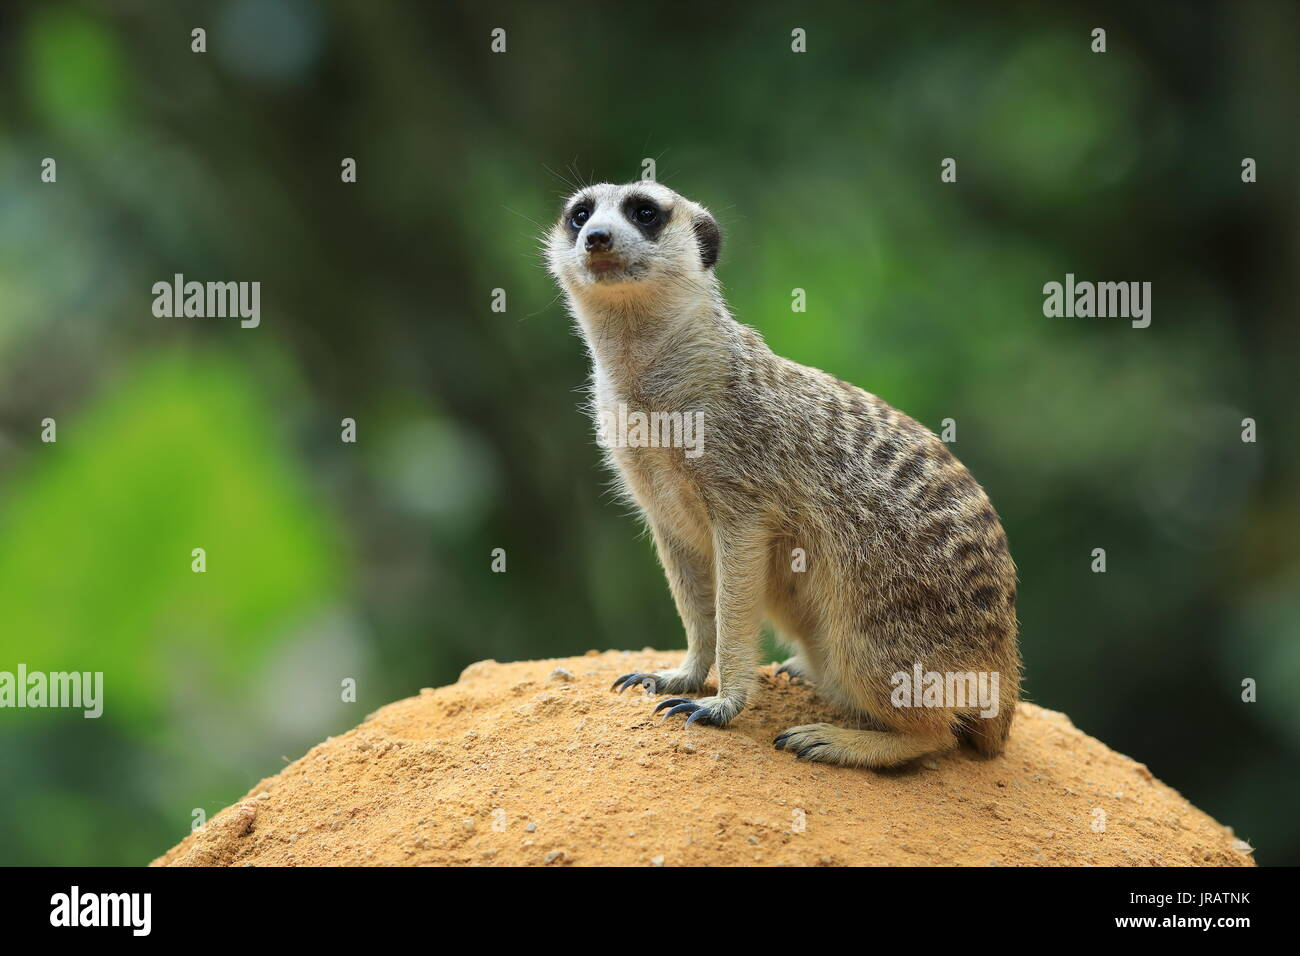 An image of a single meerkat - Stock Image